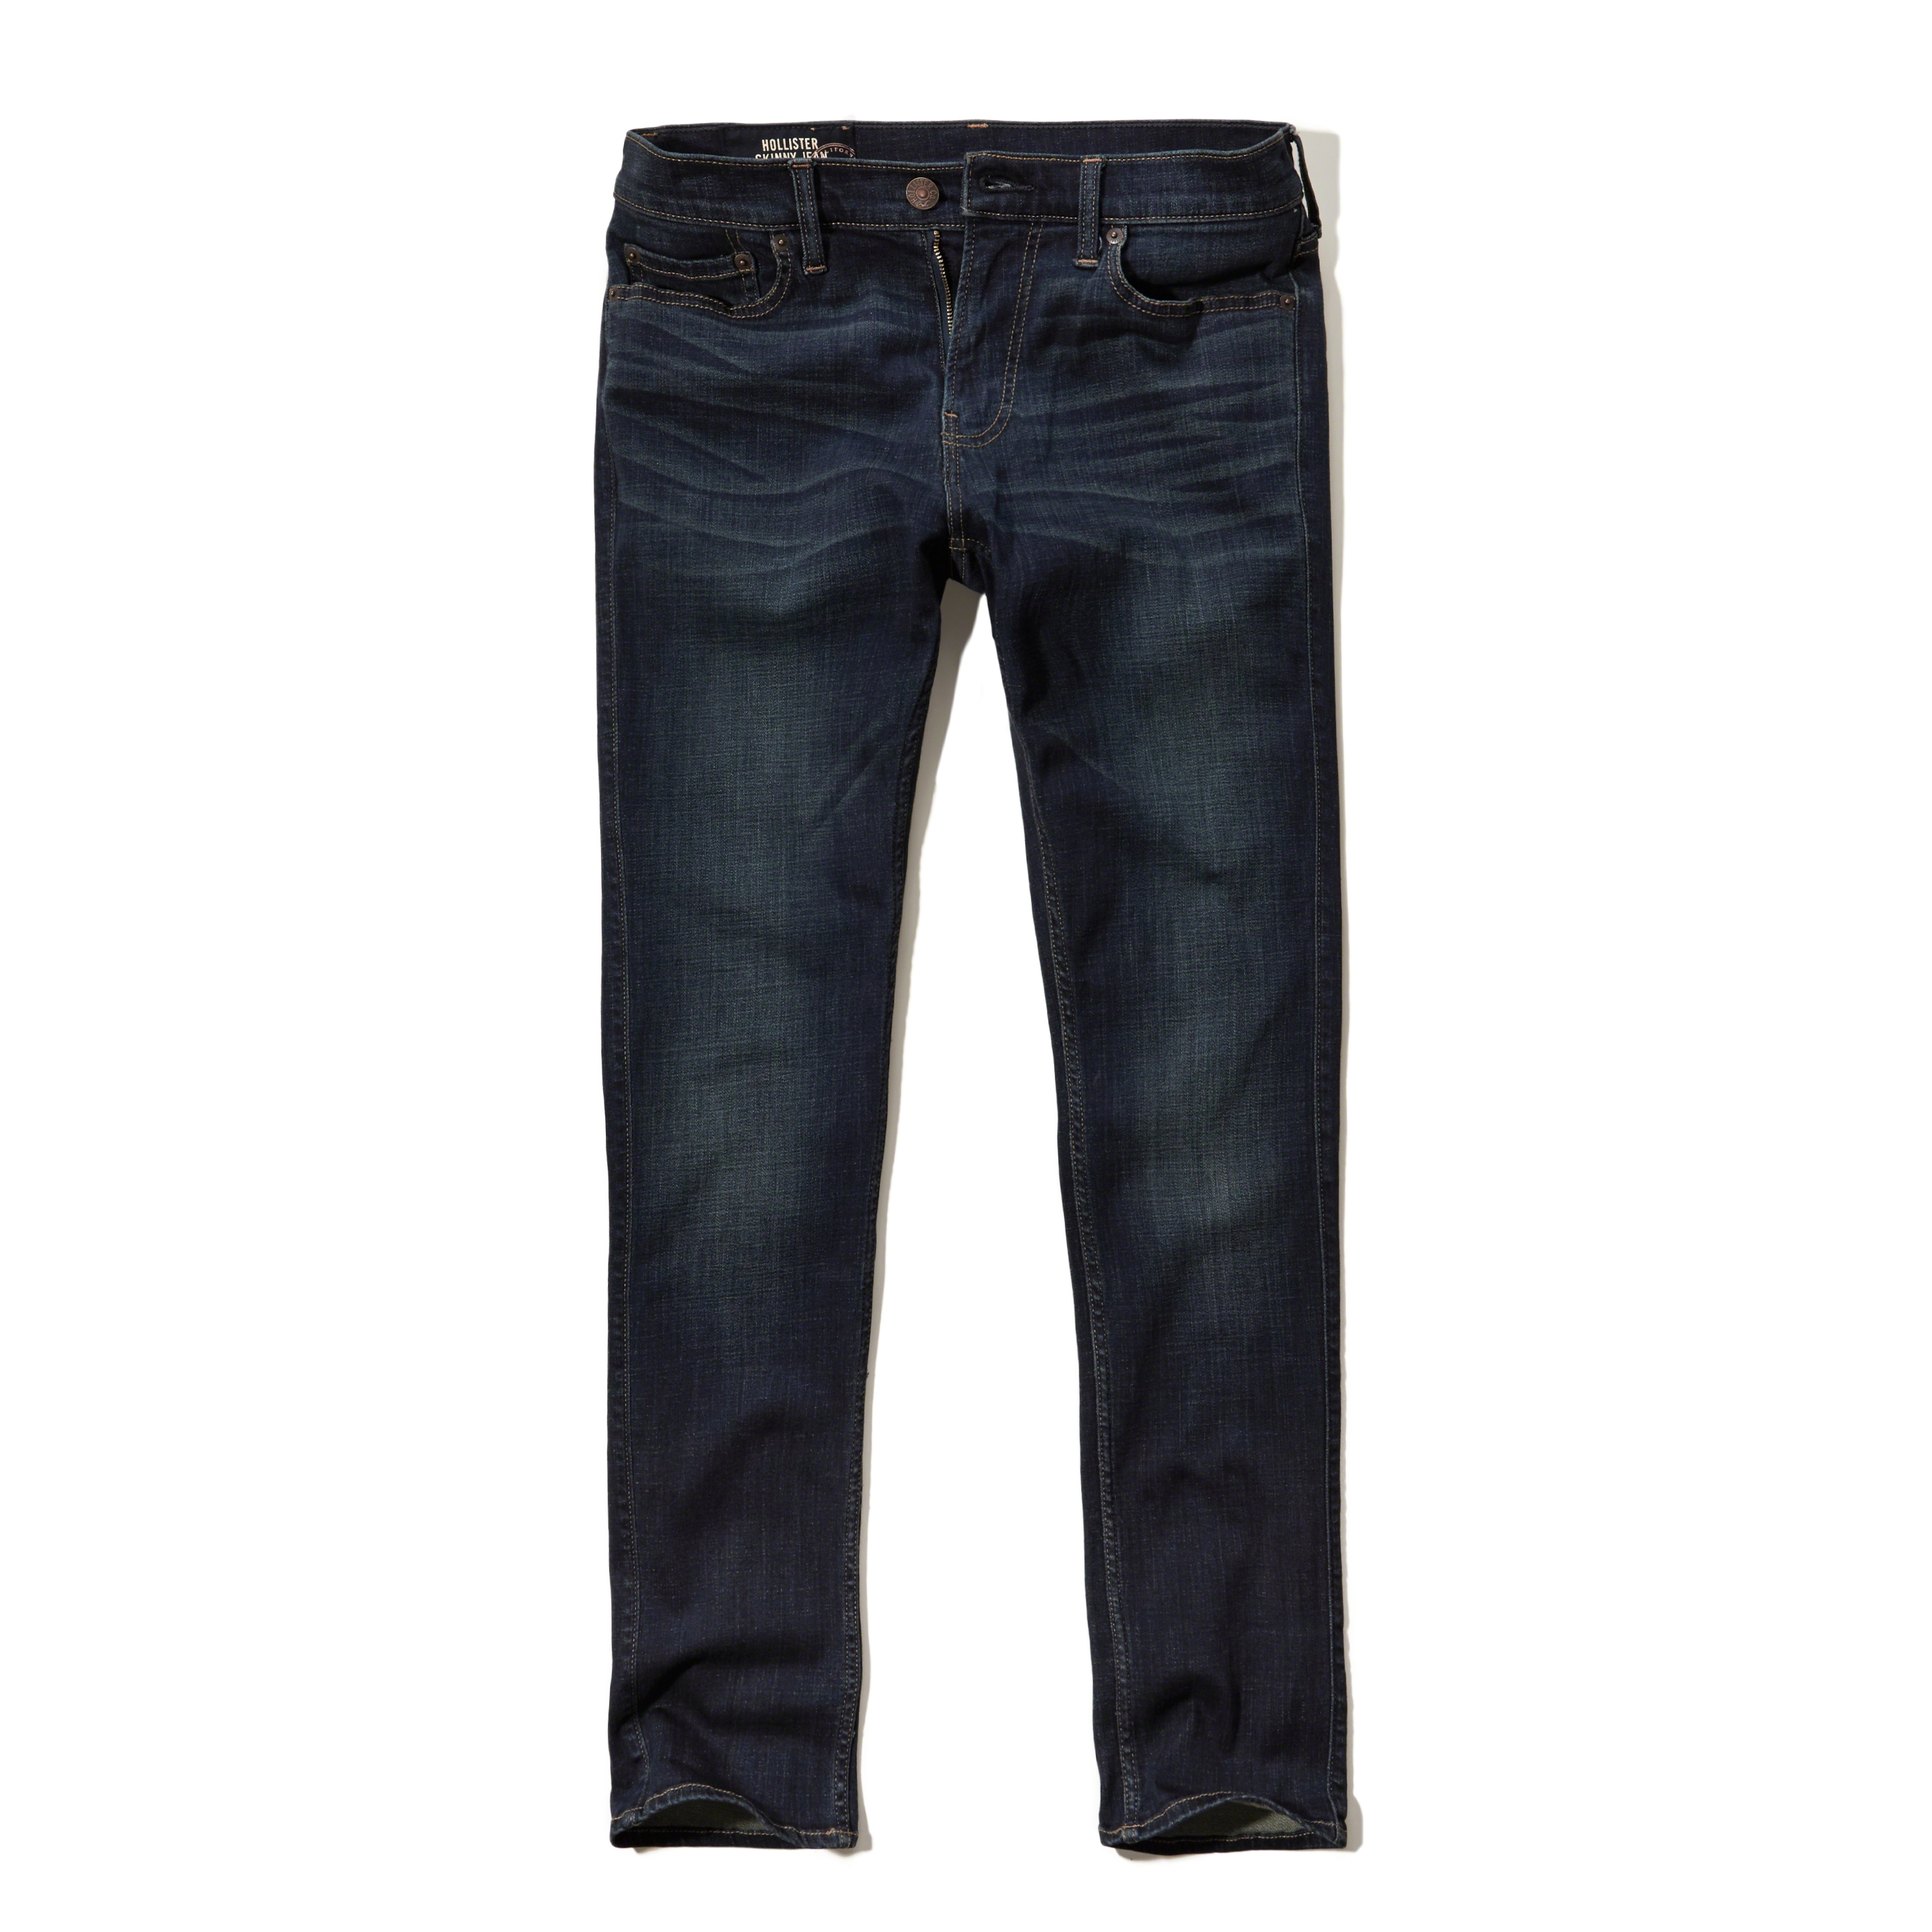 hollister dark jeans for men - photo #6